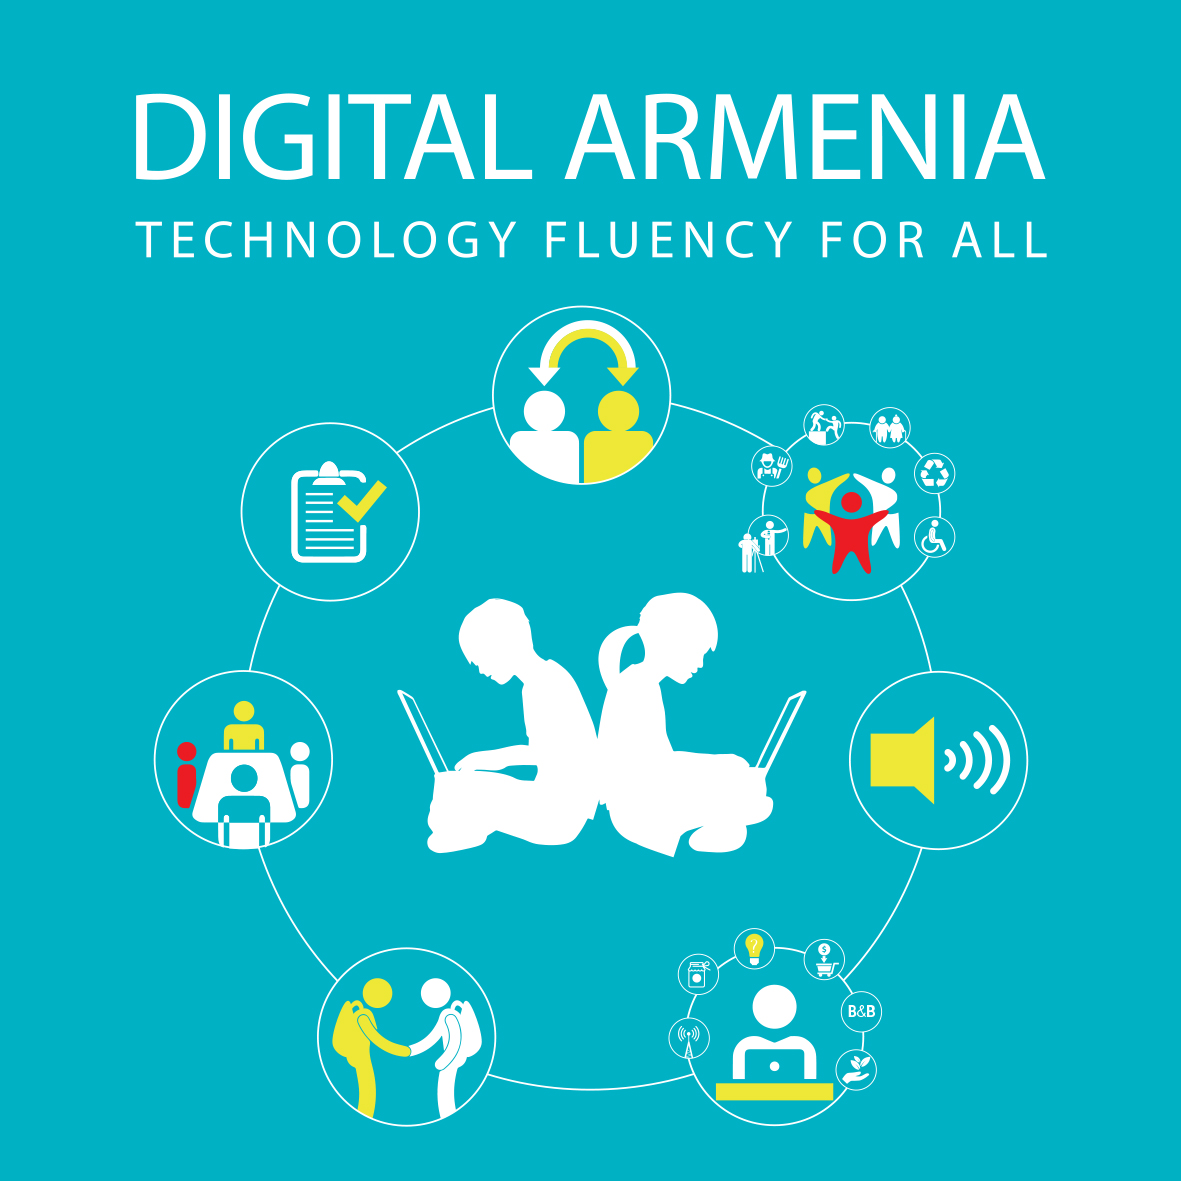 Digital Armenia